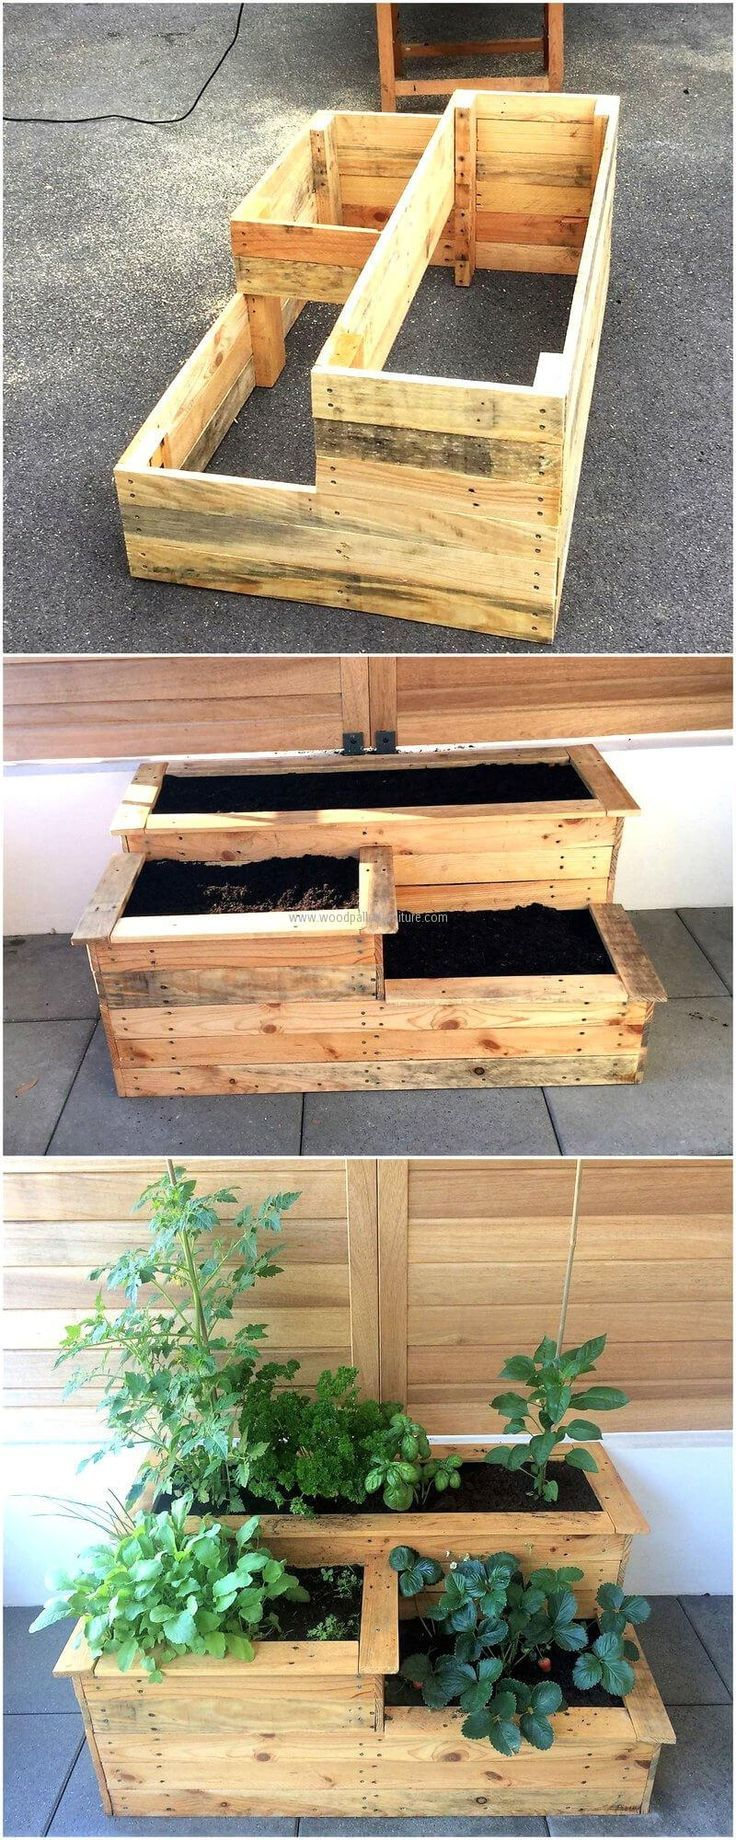 raised garden bed ideas repurposed wood ideas for decorating